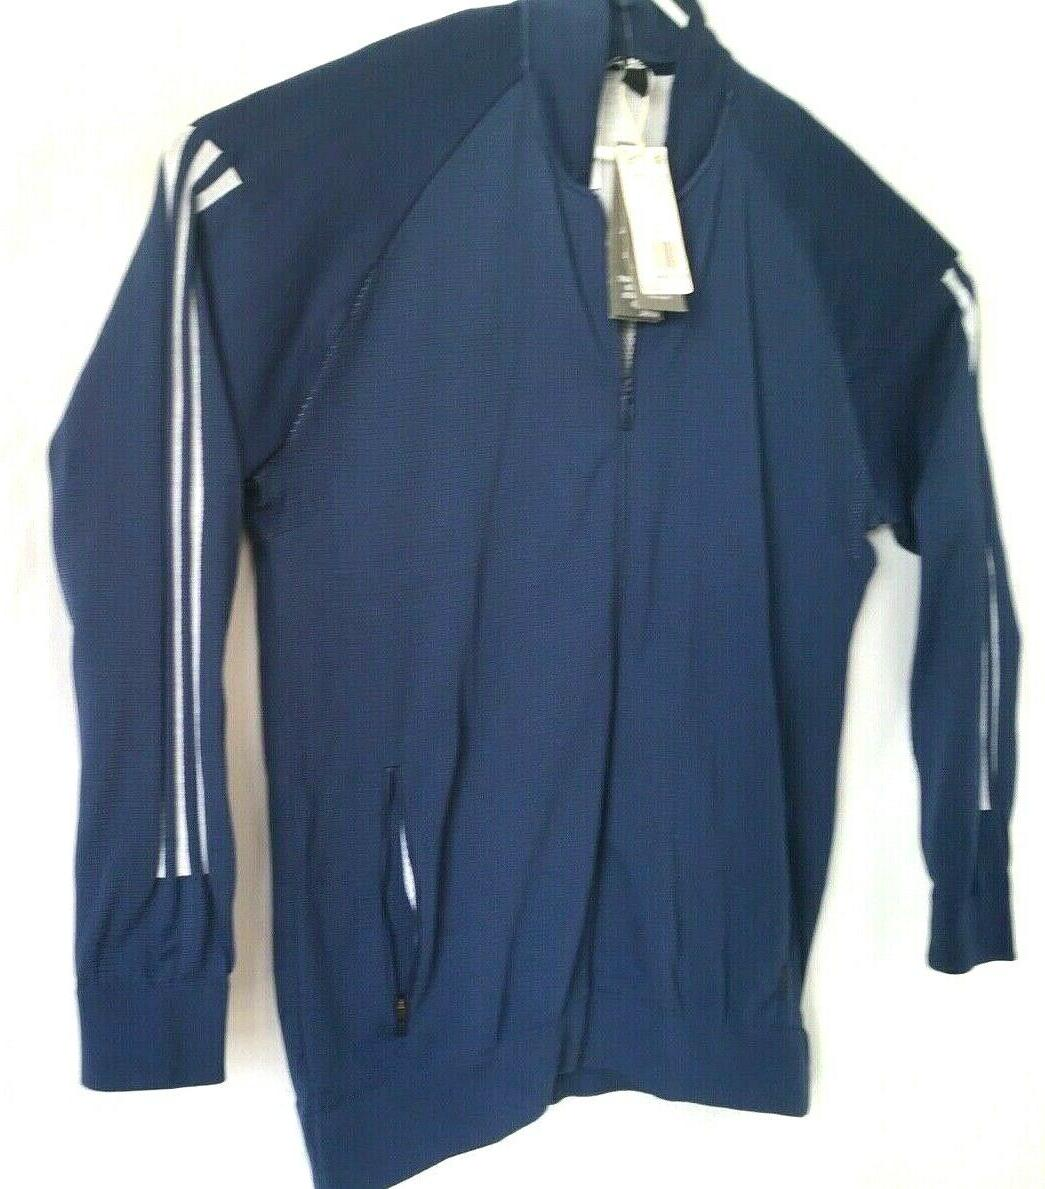 NWT Adidas Bomber Athletic Jacket Size LARGE $120